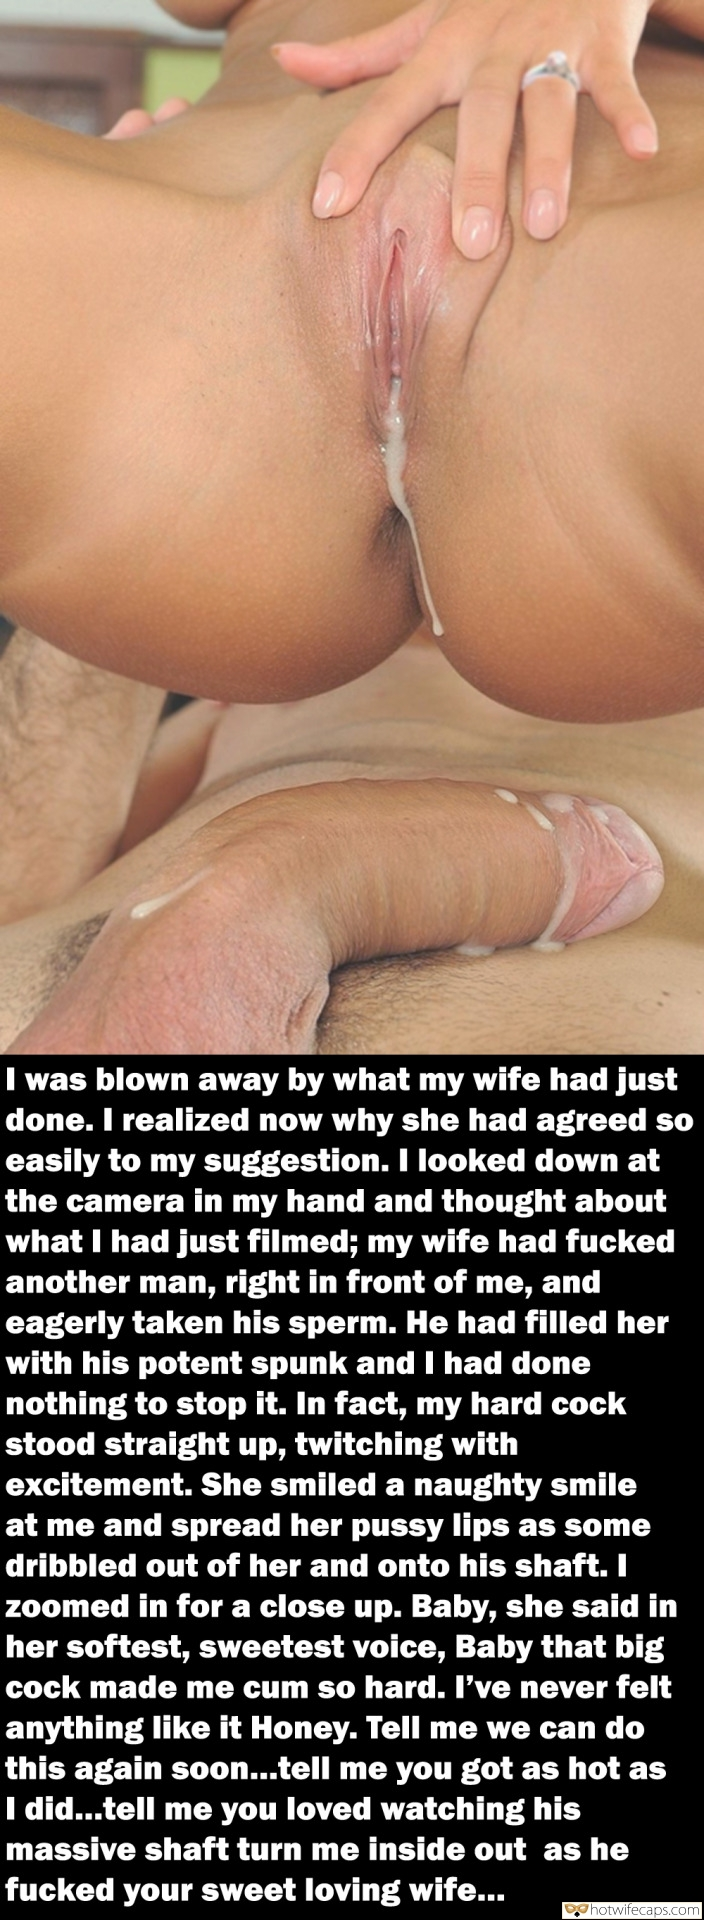 Cum Slut Creampie Breeding Bigger Cock hotwife caption: I was blown away by what my wife had just done. I realized now why she had agreed so easily to my suggestion. I looked down at the camera in my hand and thought about what I had just filmed;...